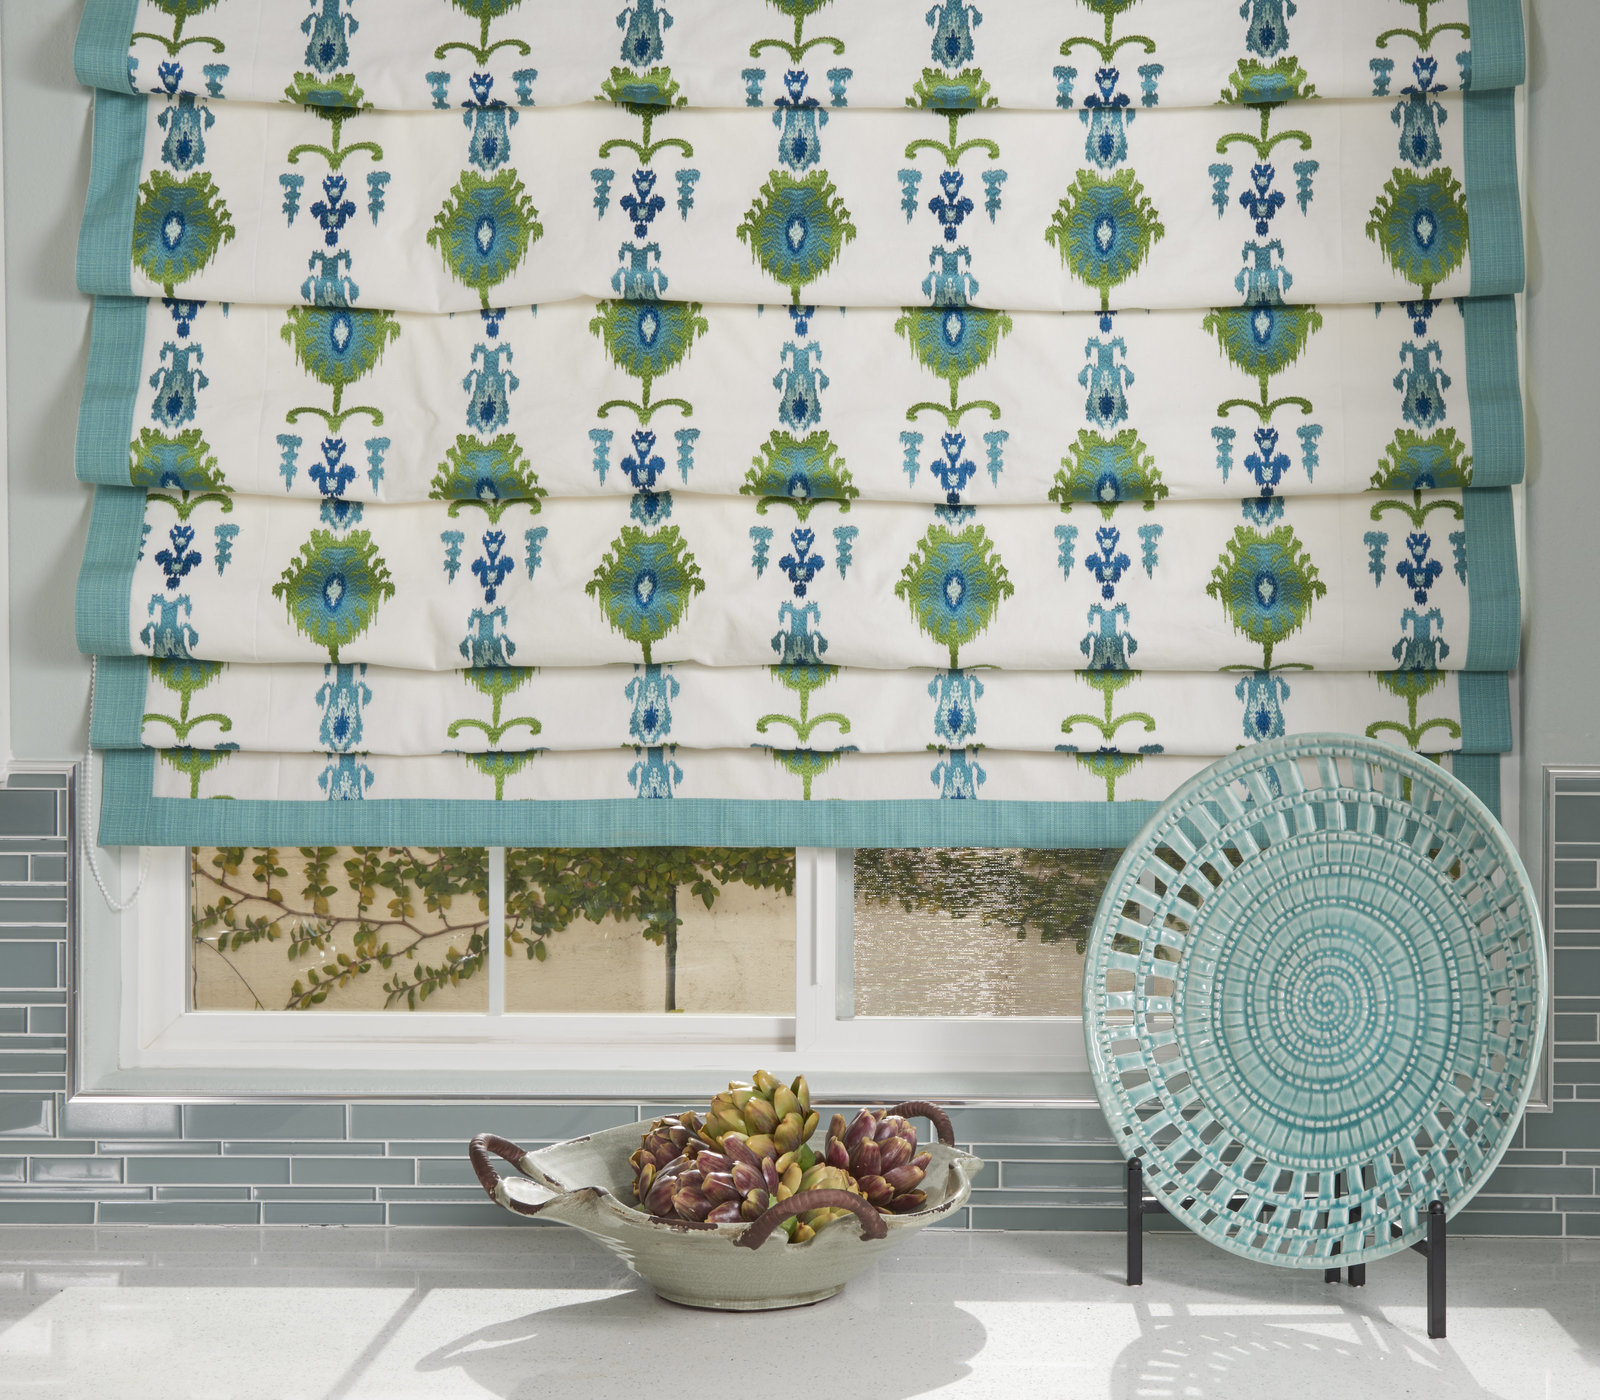 Beach House Kitchen Window Treatments